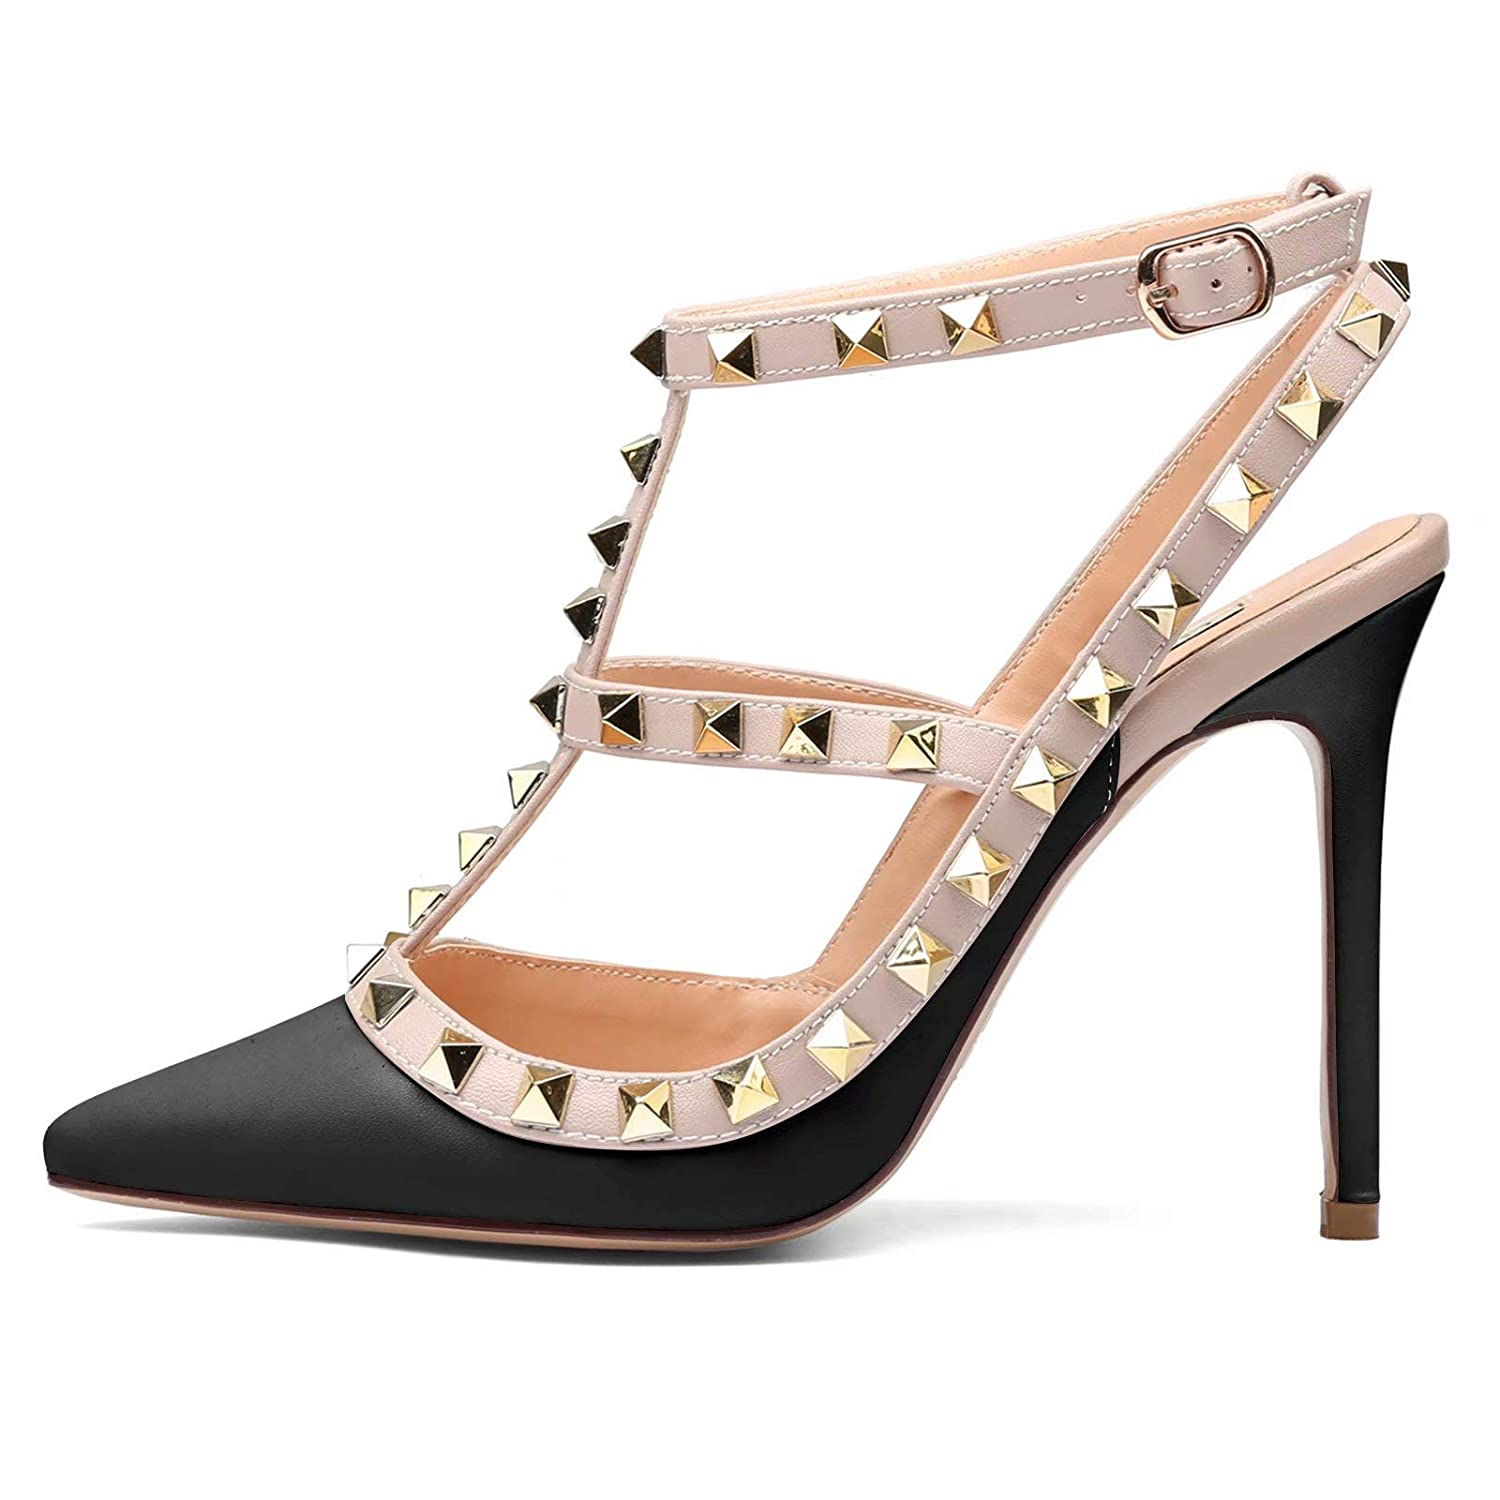 TZAMCW Womens Studded High Heels 4 Inch Stiletto Heel Gold Stud Heeled Sandals Pointed Toe Strappy Buckle Studs Leather Dress Pumps Size 5-14 US